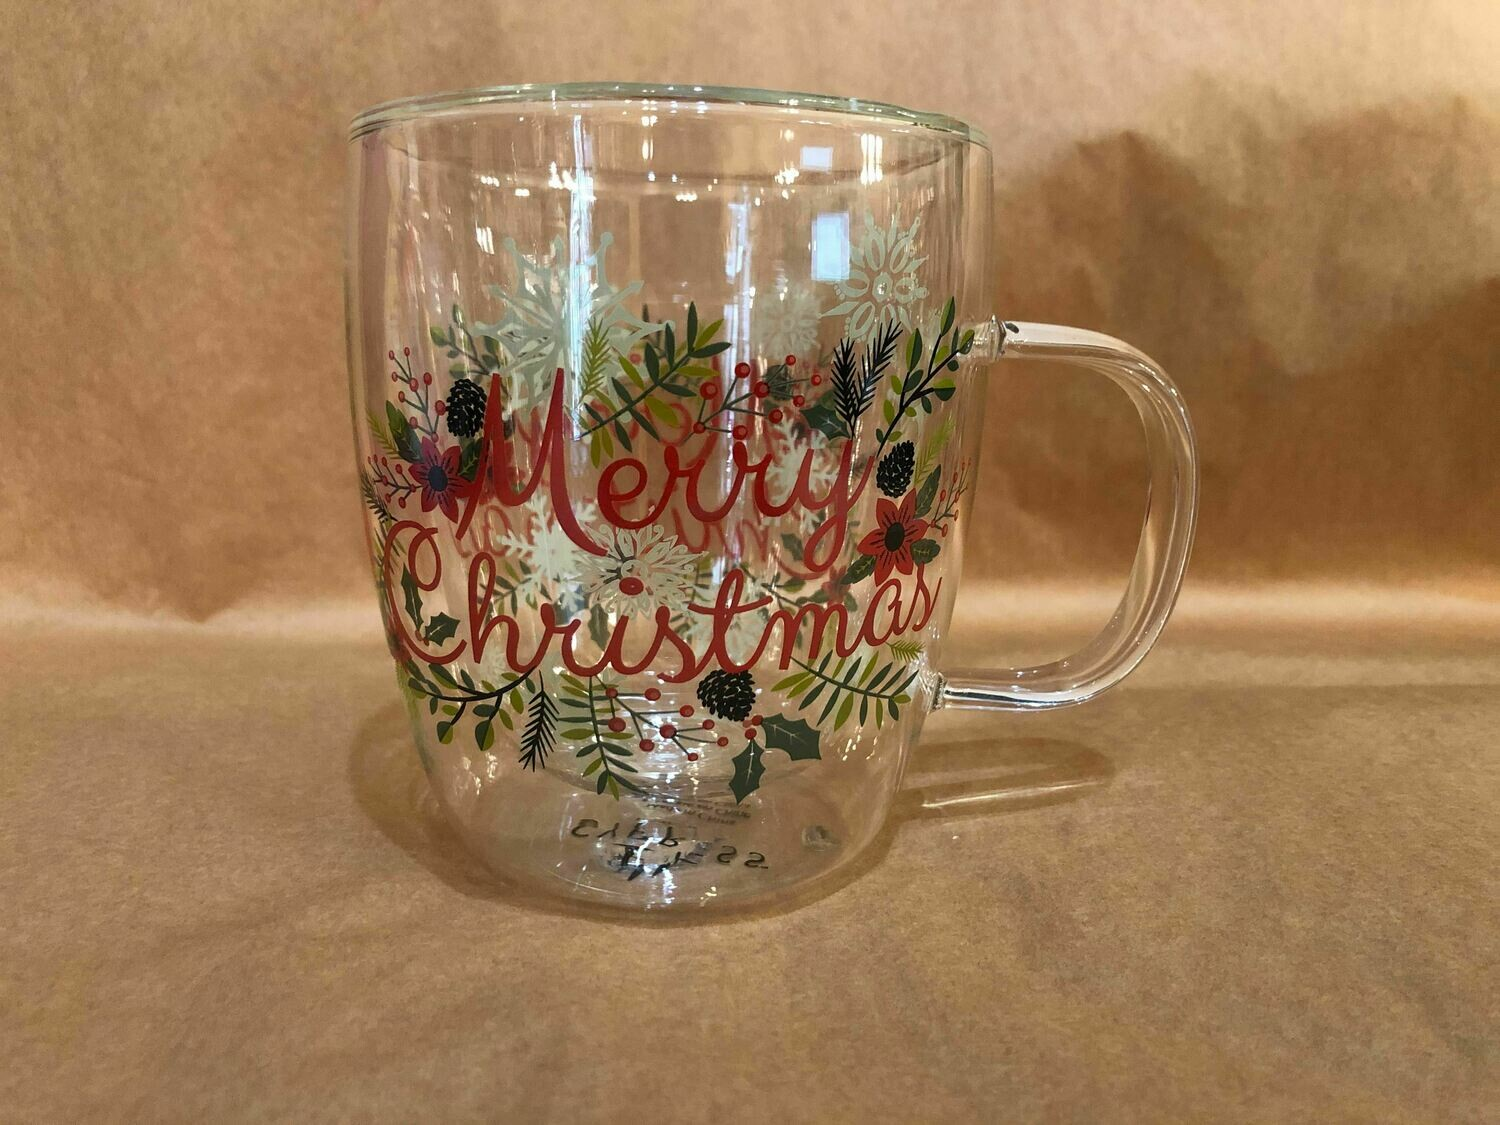 Merry Christmas Glass Mug